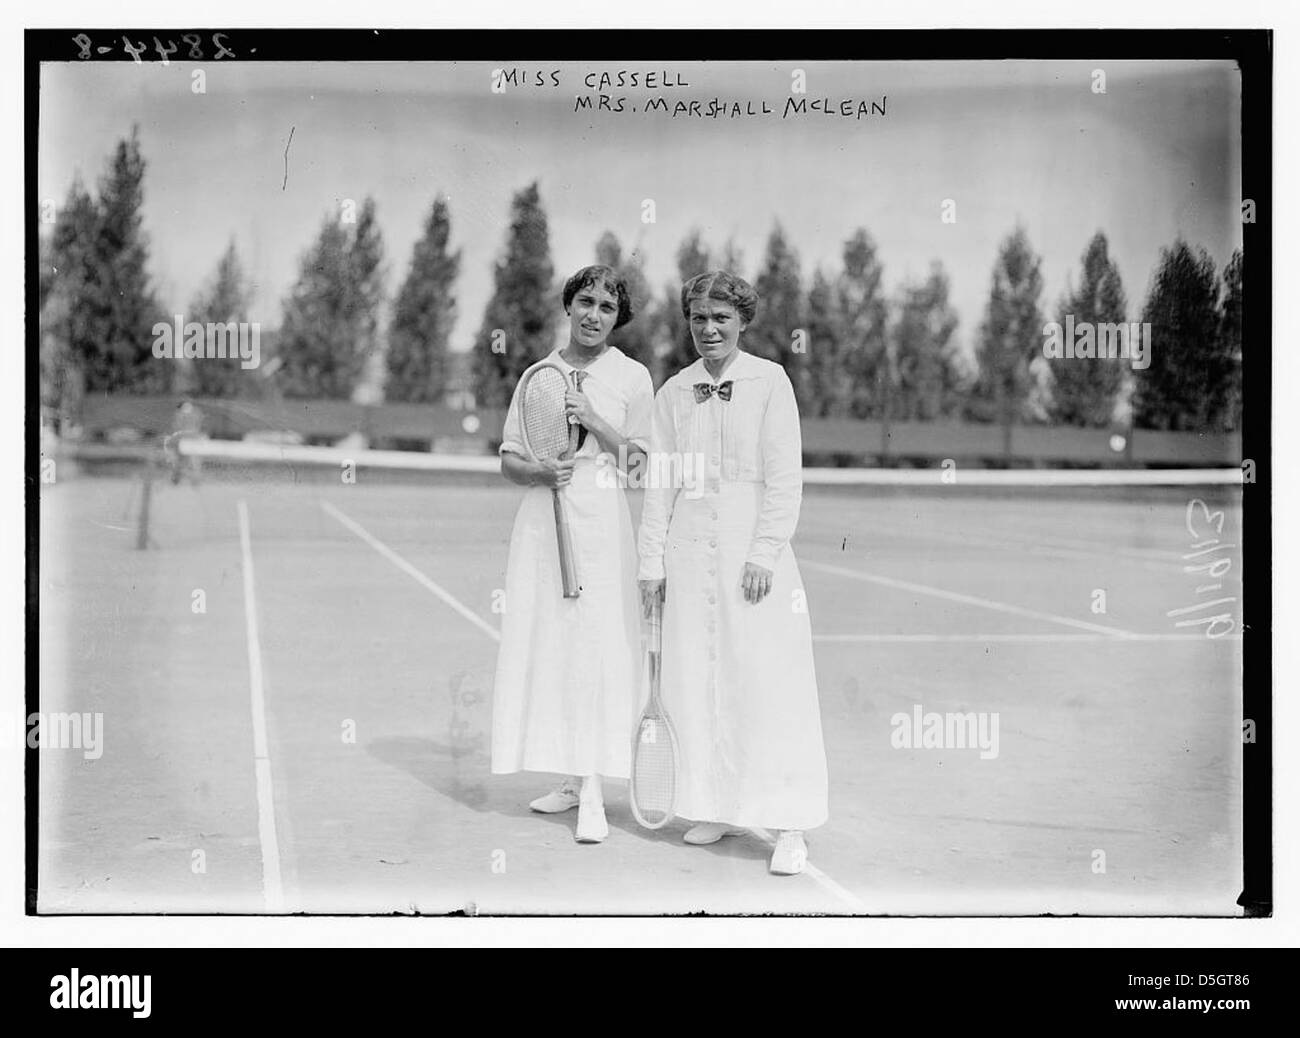 Miss Cassell [and] Mrs. Marshall McLean (LOC) - Stock Image